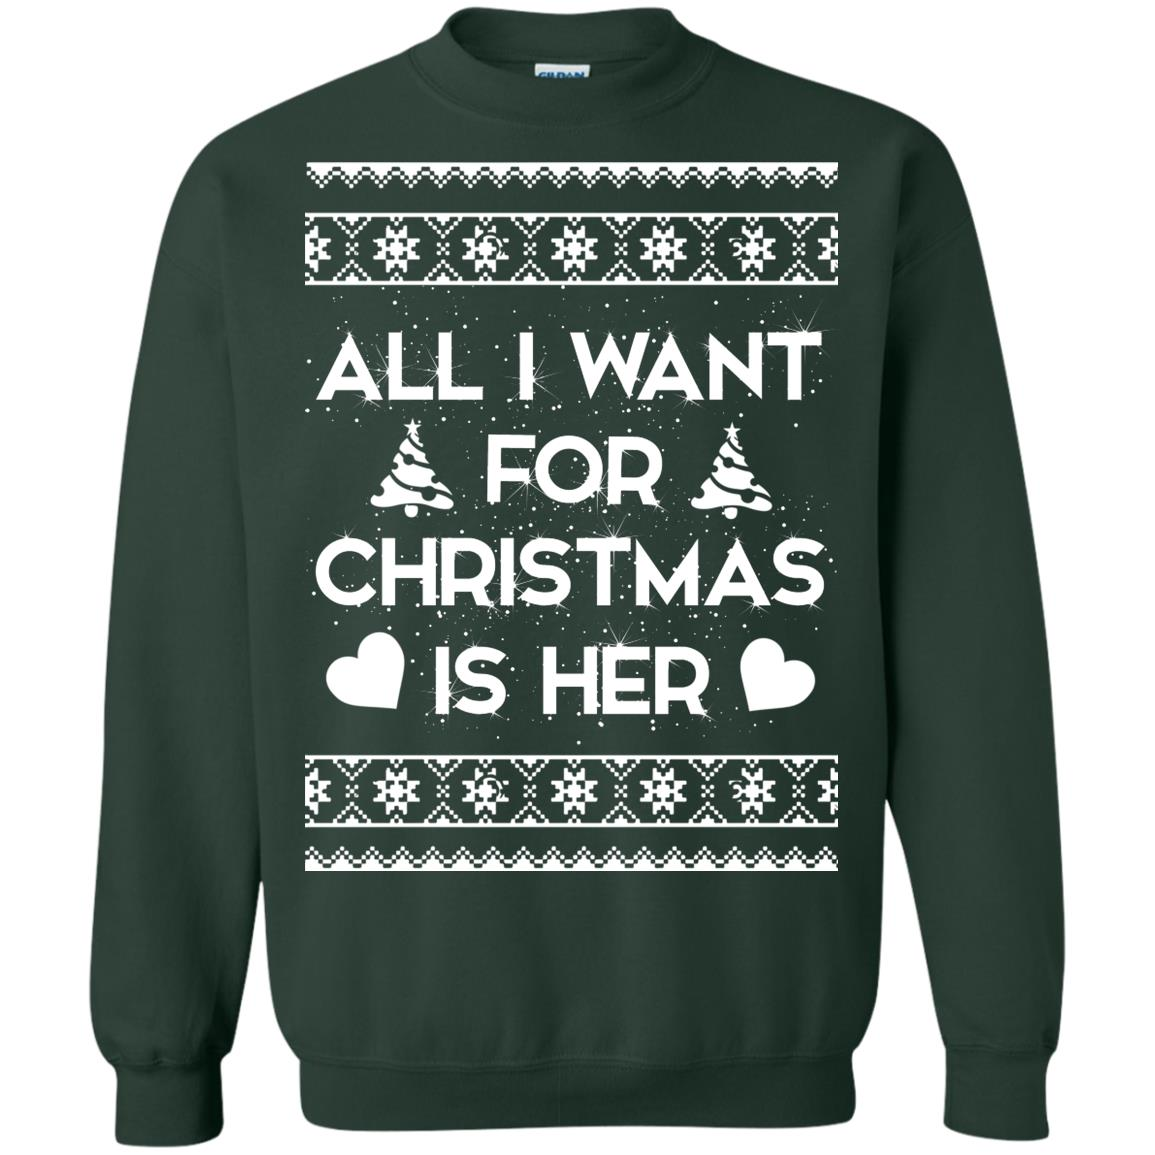 image 2392 - Couple Sweatshirt: All I Want For Christmas Is Her ugly Sweater, Shirt